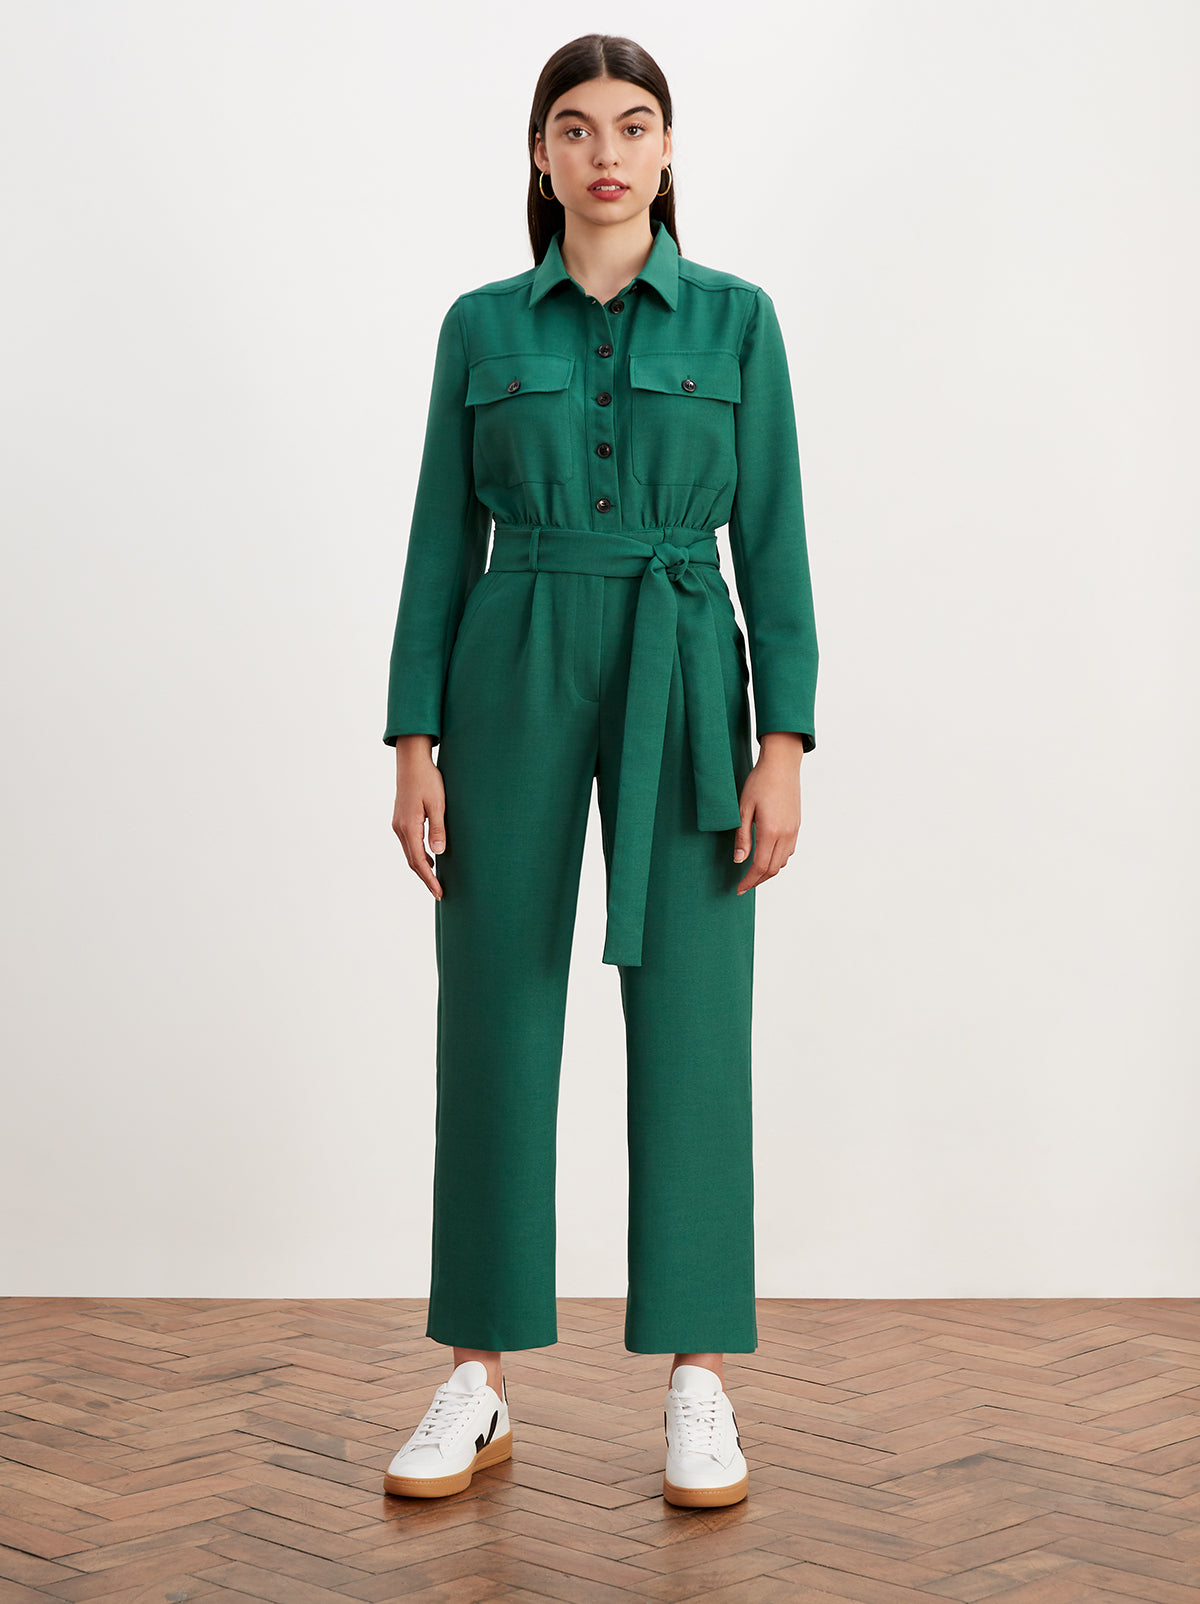 Celeste Green Tailored Jumpsuit by KITRI Studio